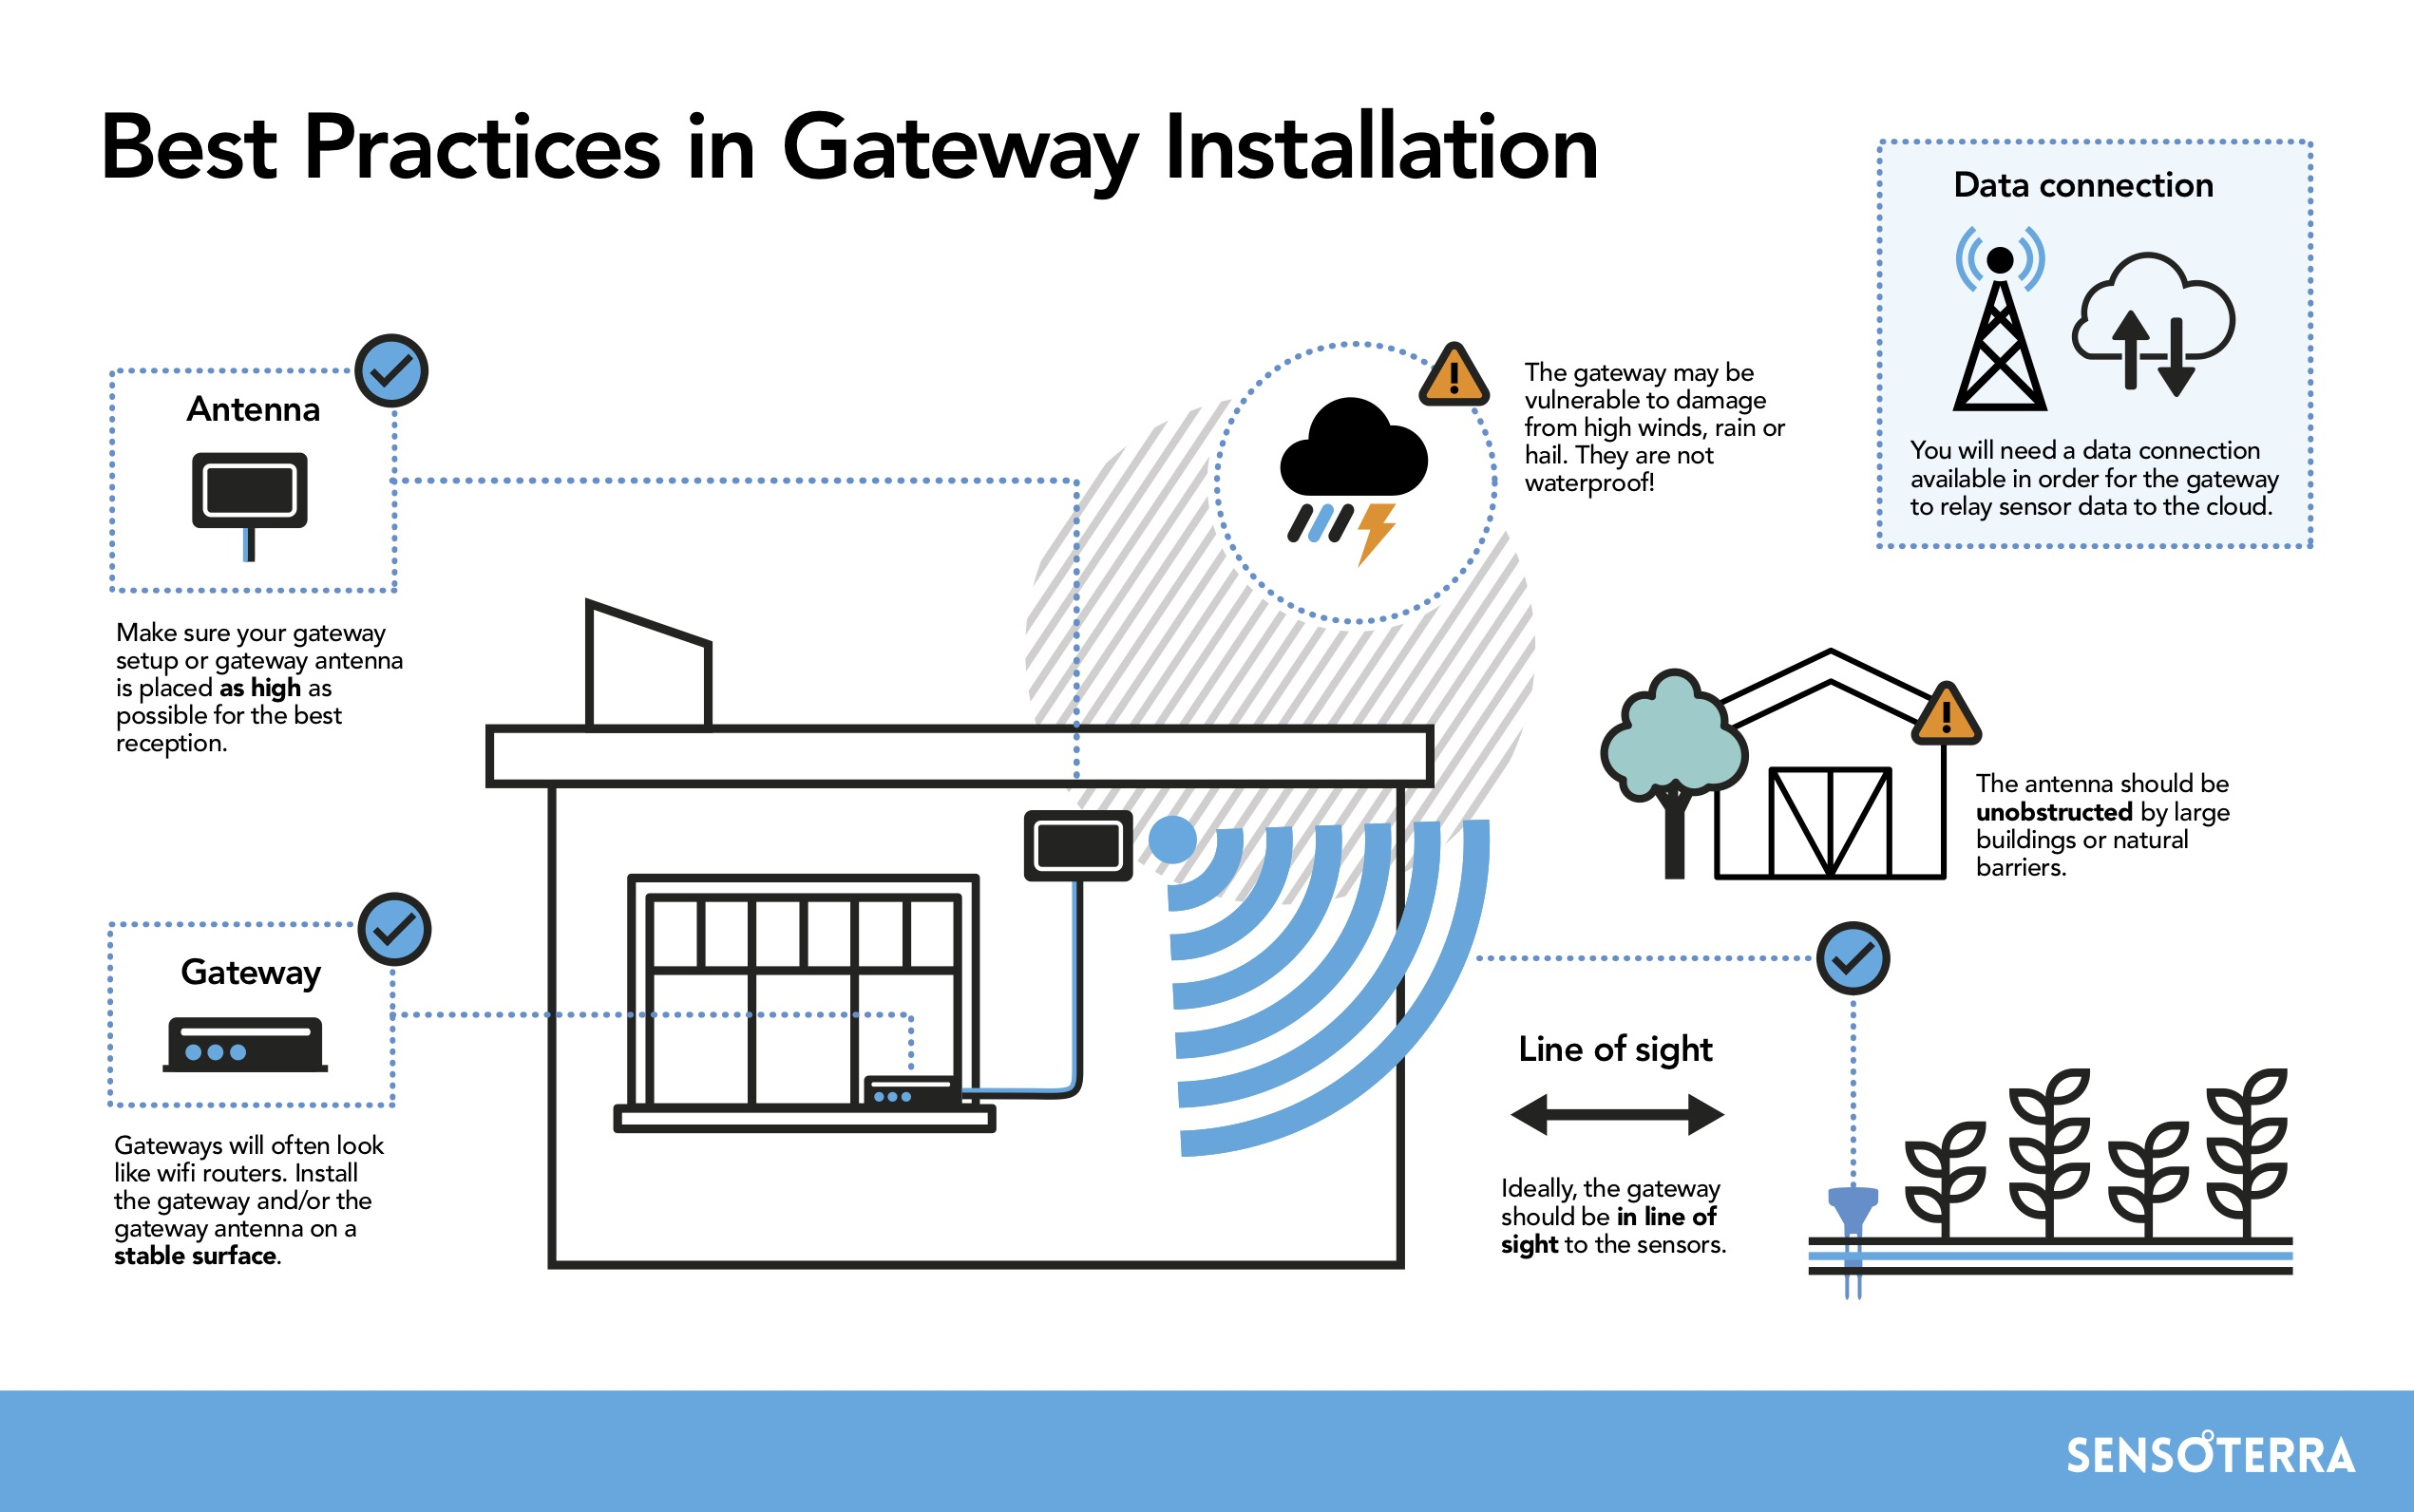 Gateway_Installation_Best_Practice.jpg